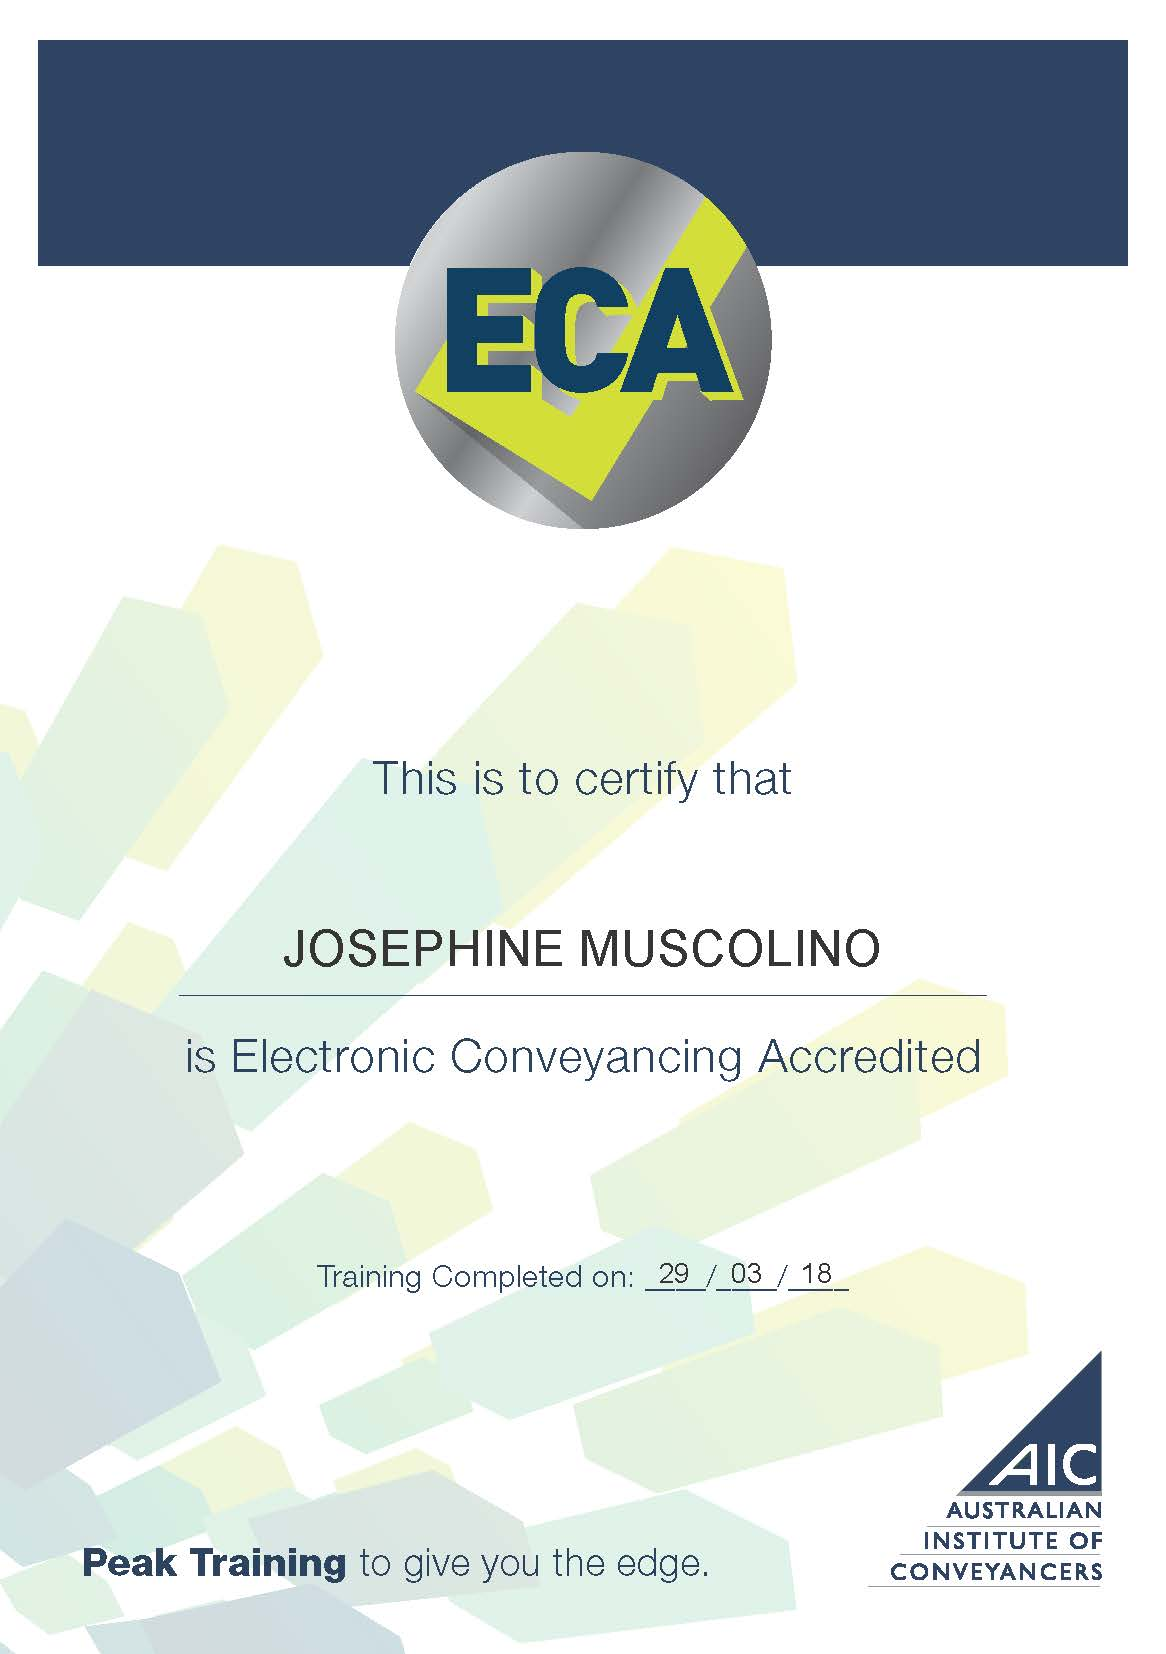 Electronic Conveyancing Accredited